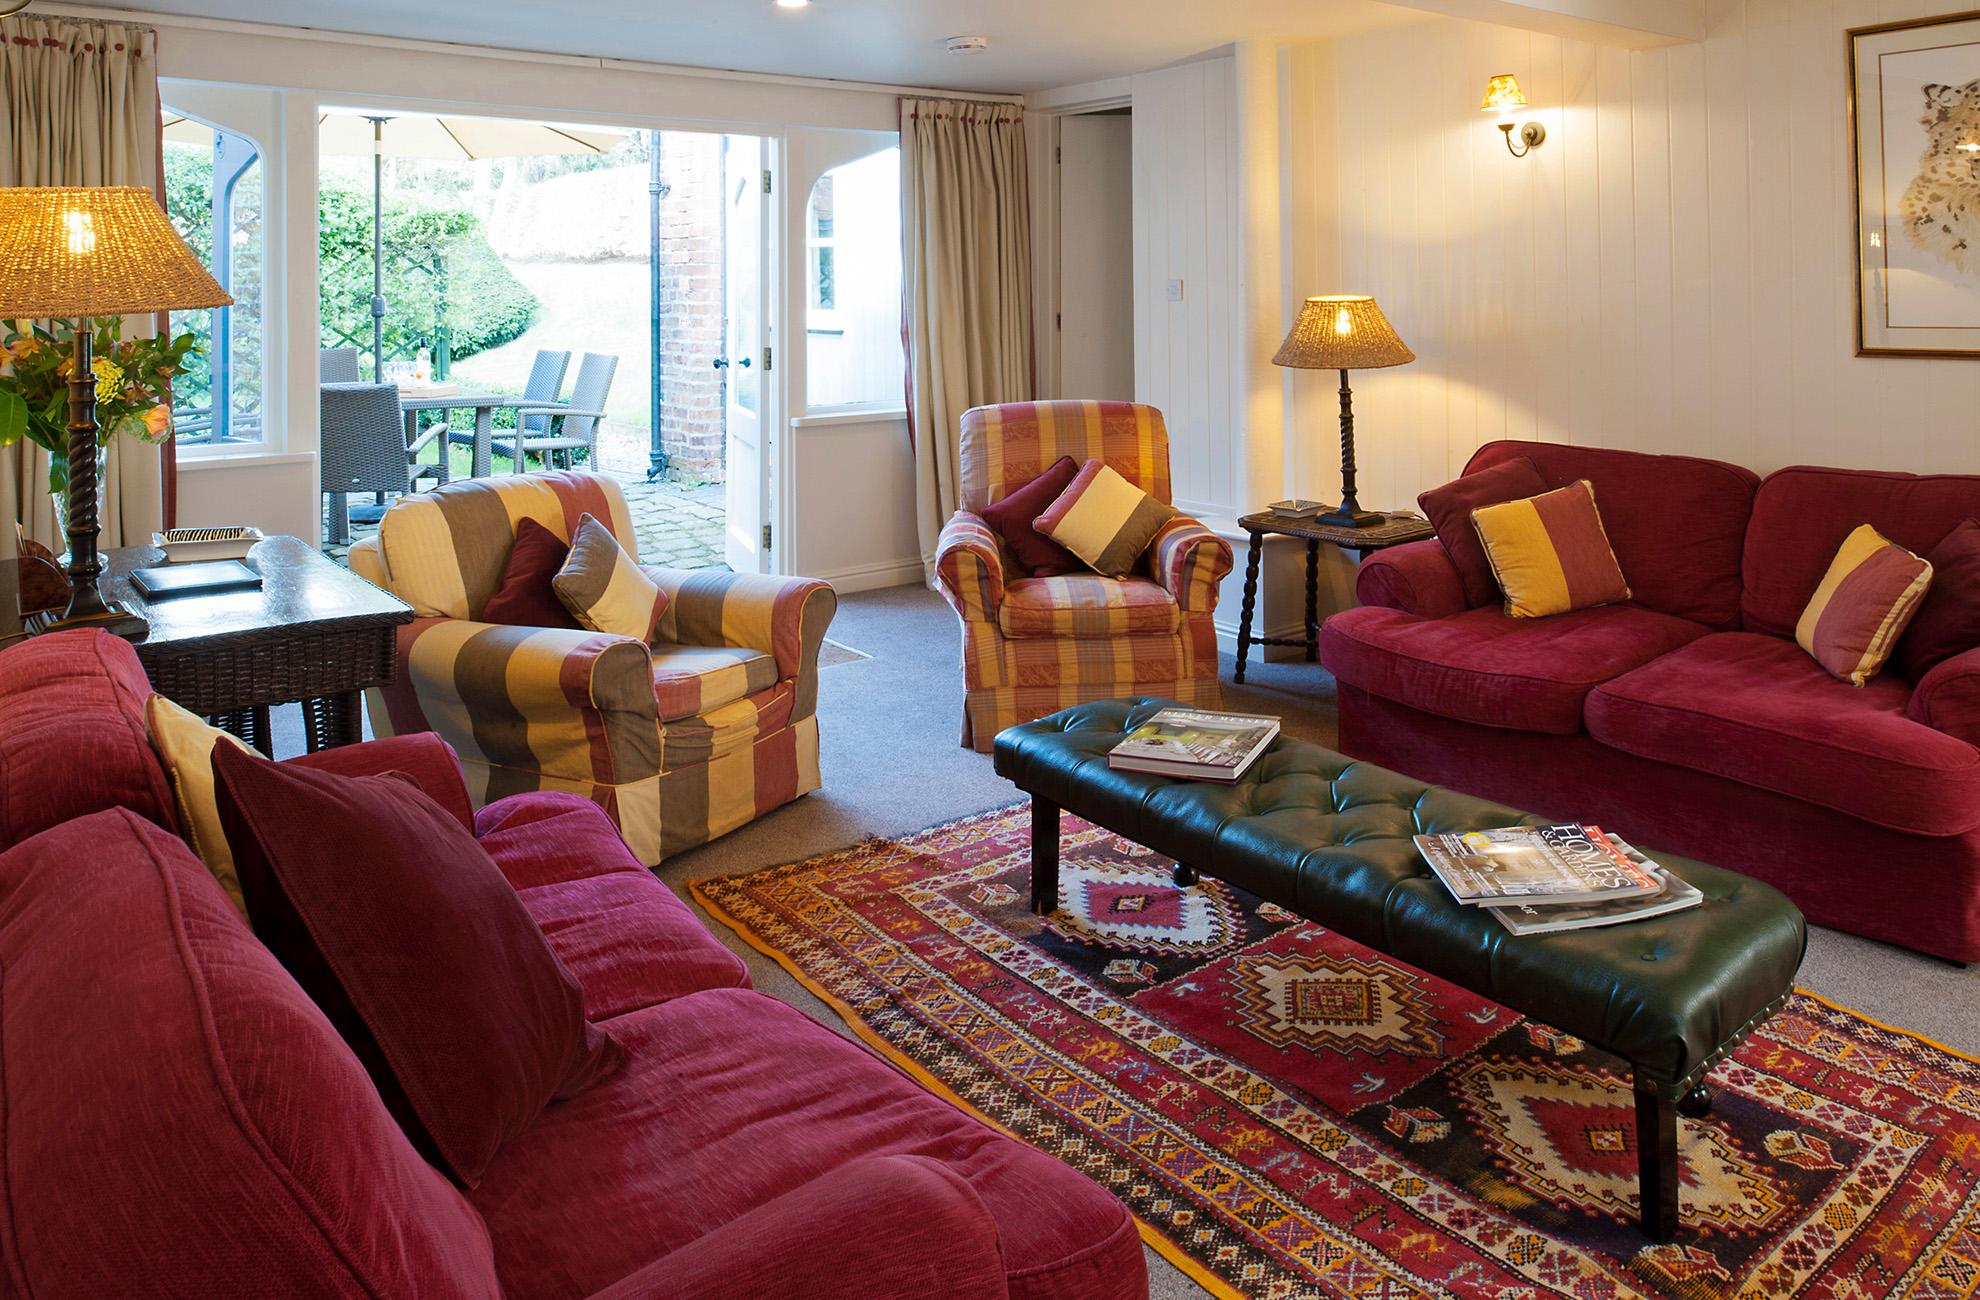 Make a weekend of it and book a stay at Combermere Abbey in Cheshire in our award winning cottages